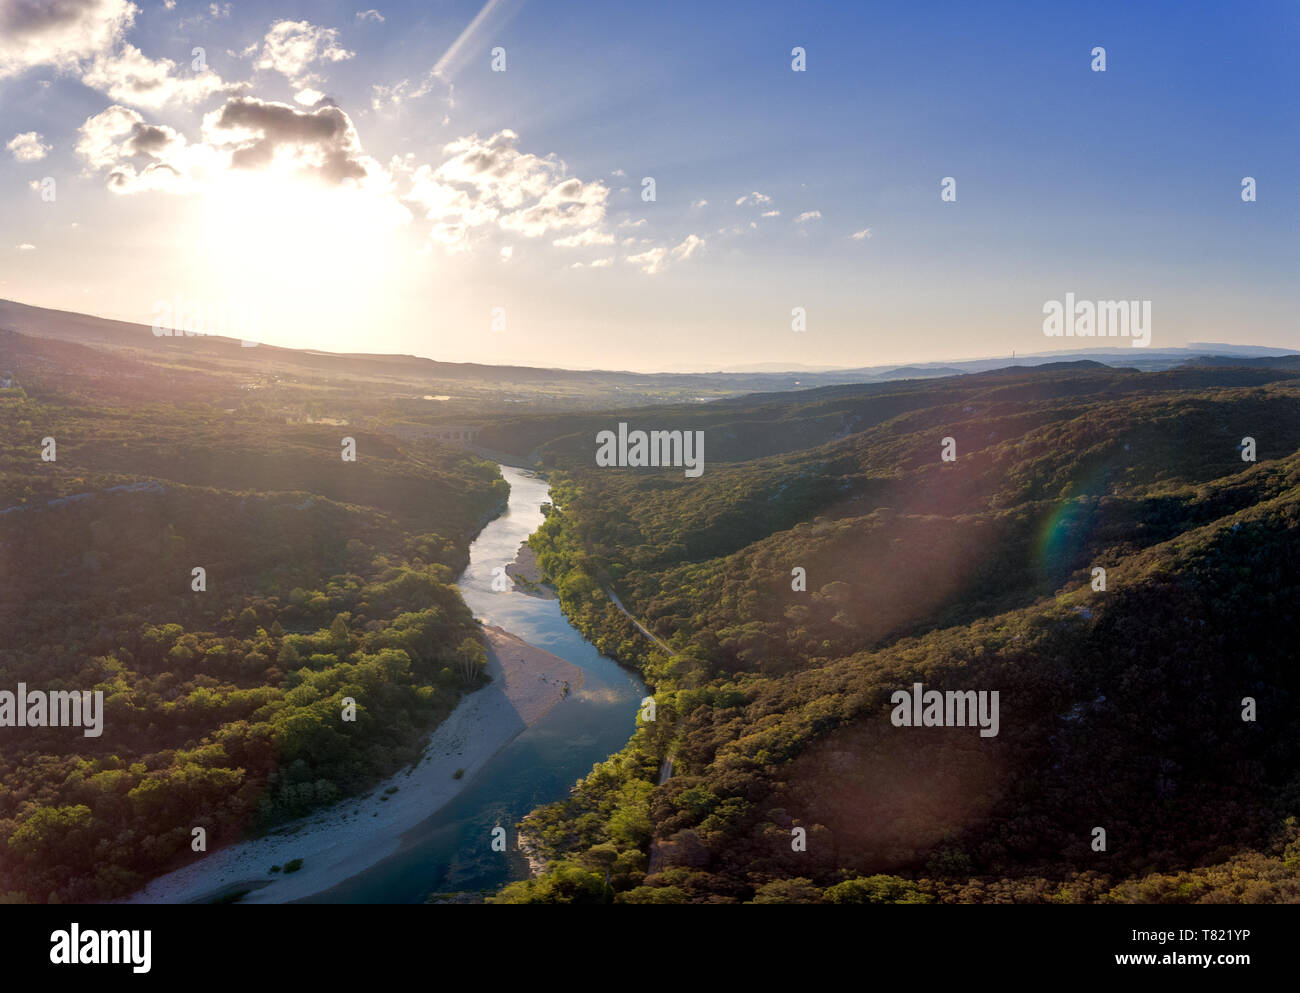 Stunning aerial drone shot of the Rhone river at sunrise. The river reflects the early morning sun and the river gorge is forested and green. An old r Stock Photo